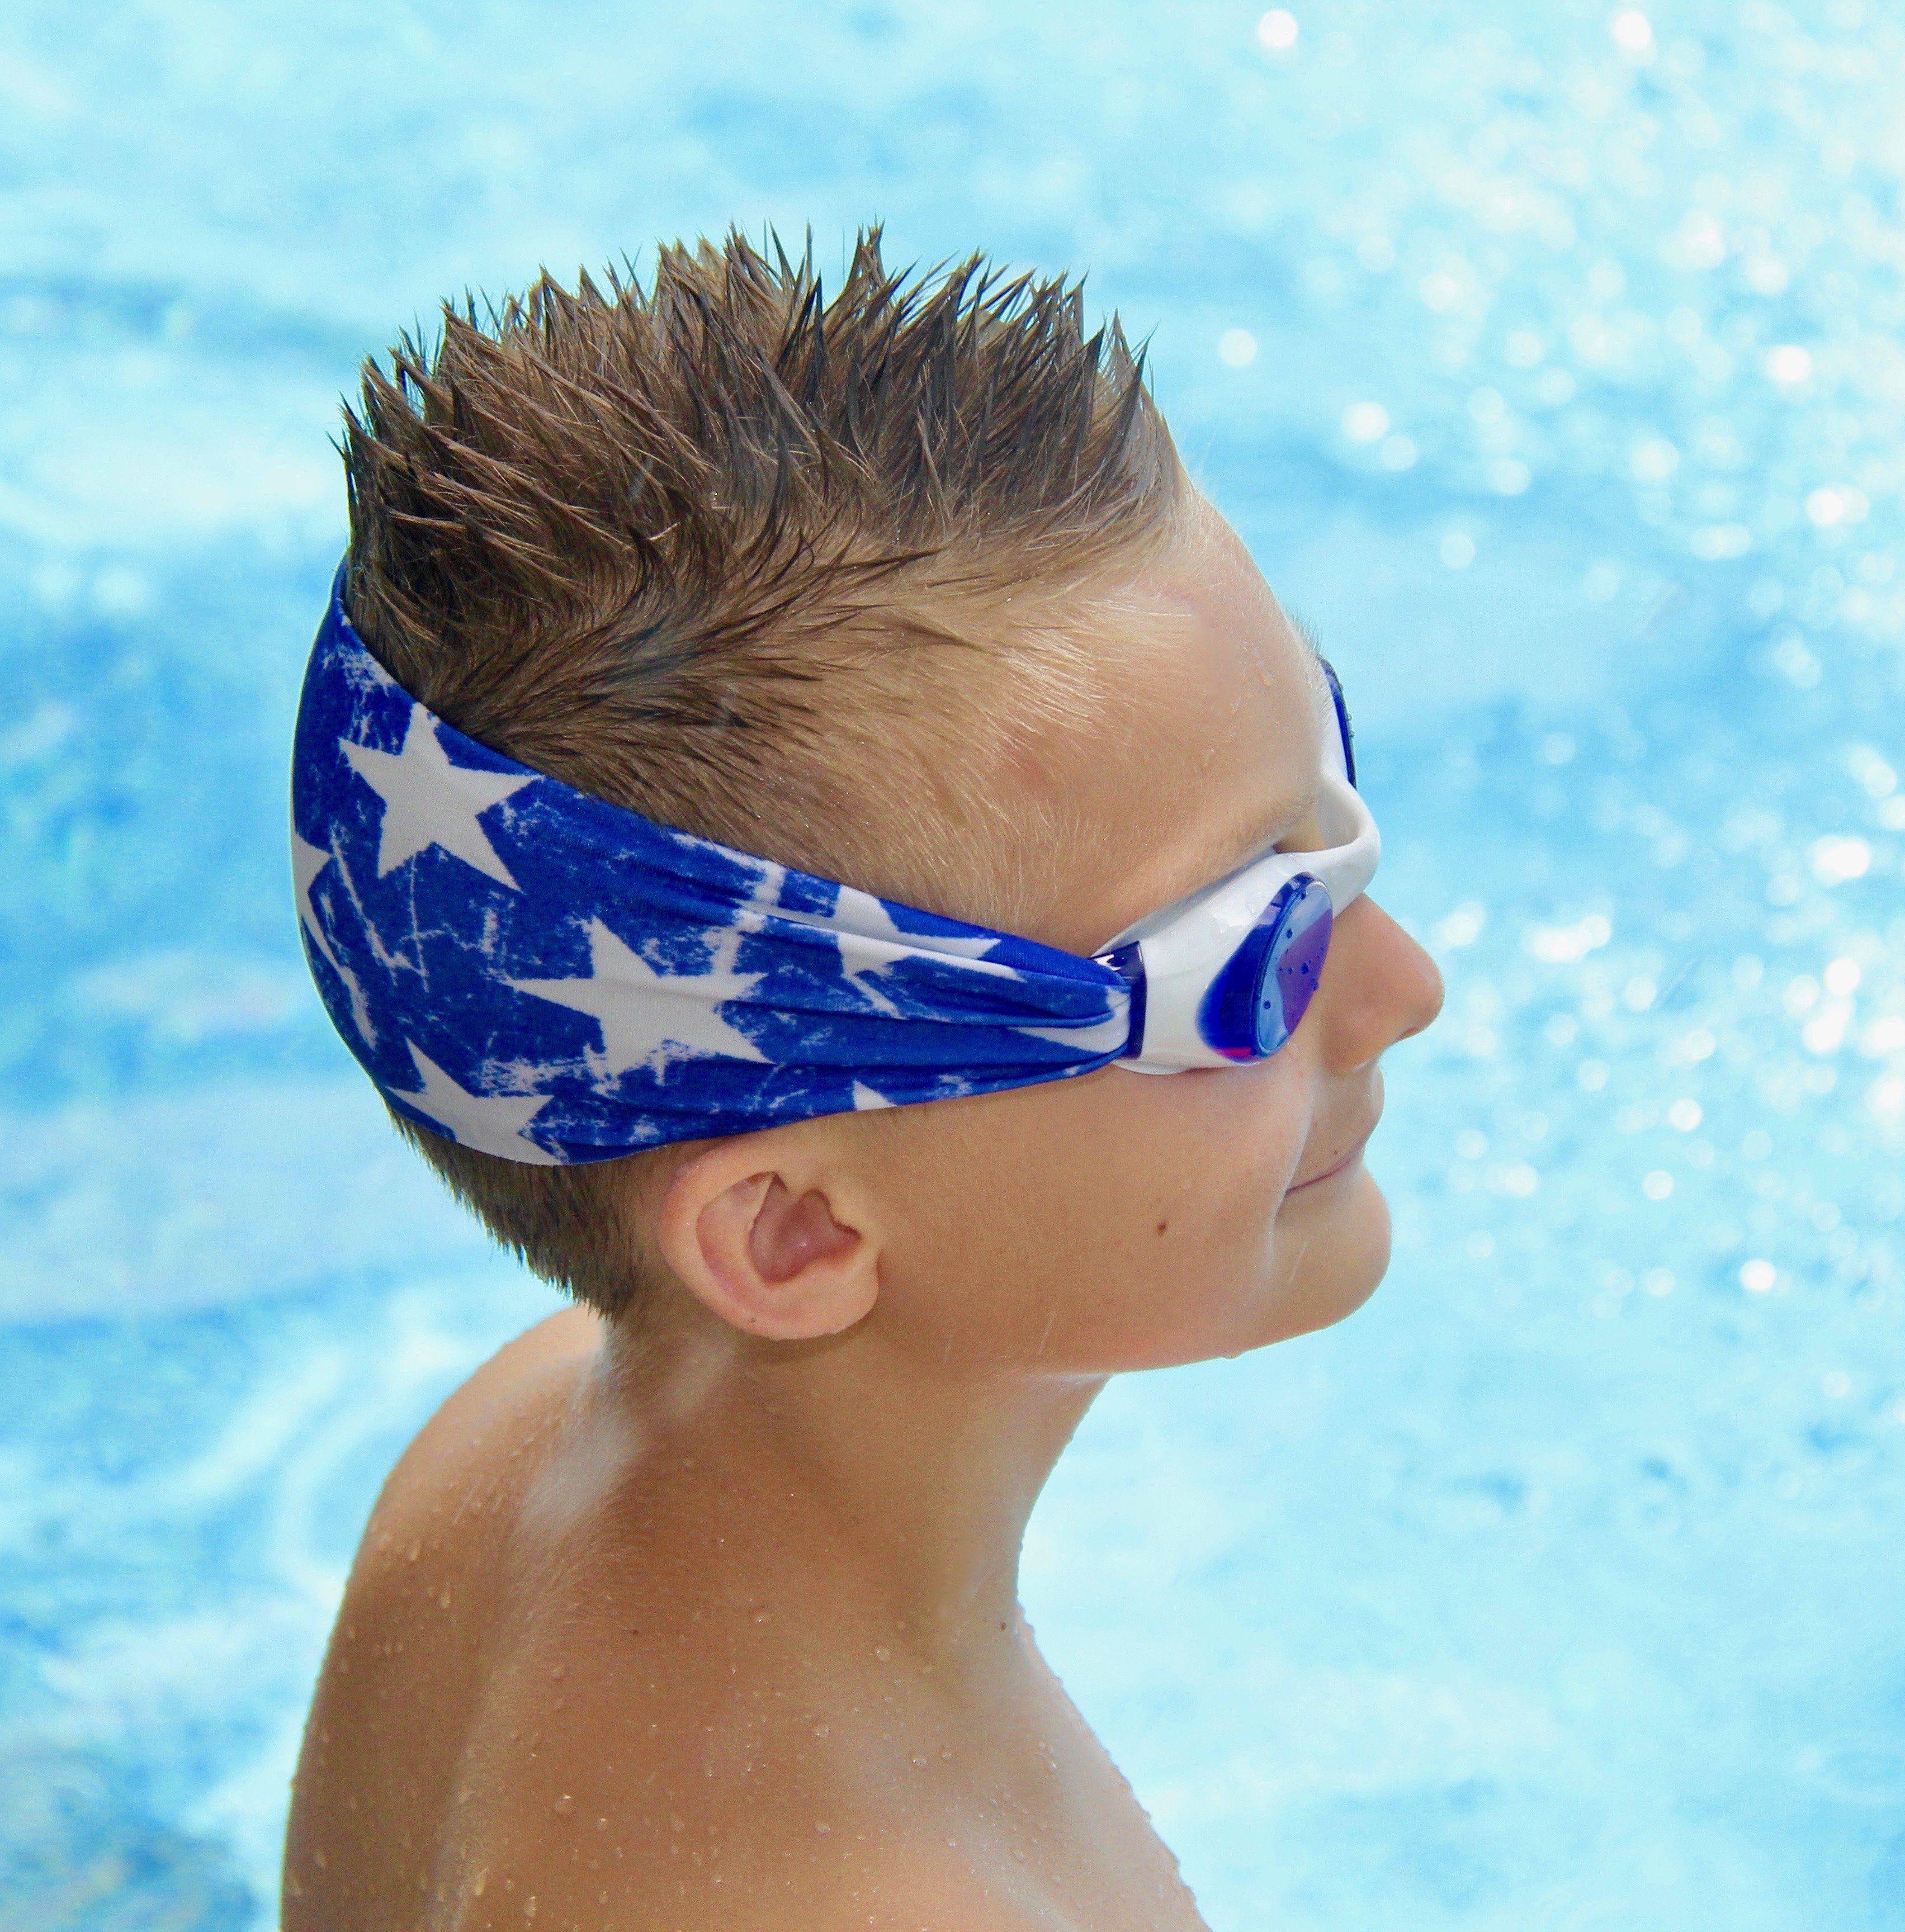 Splash Swim Goggles keep kids from yanking their hair out when putting them on.